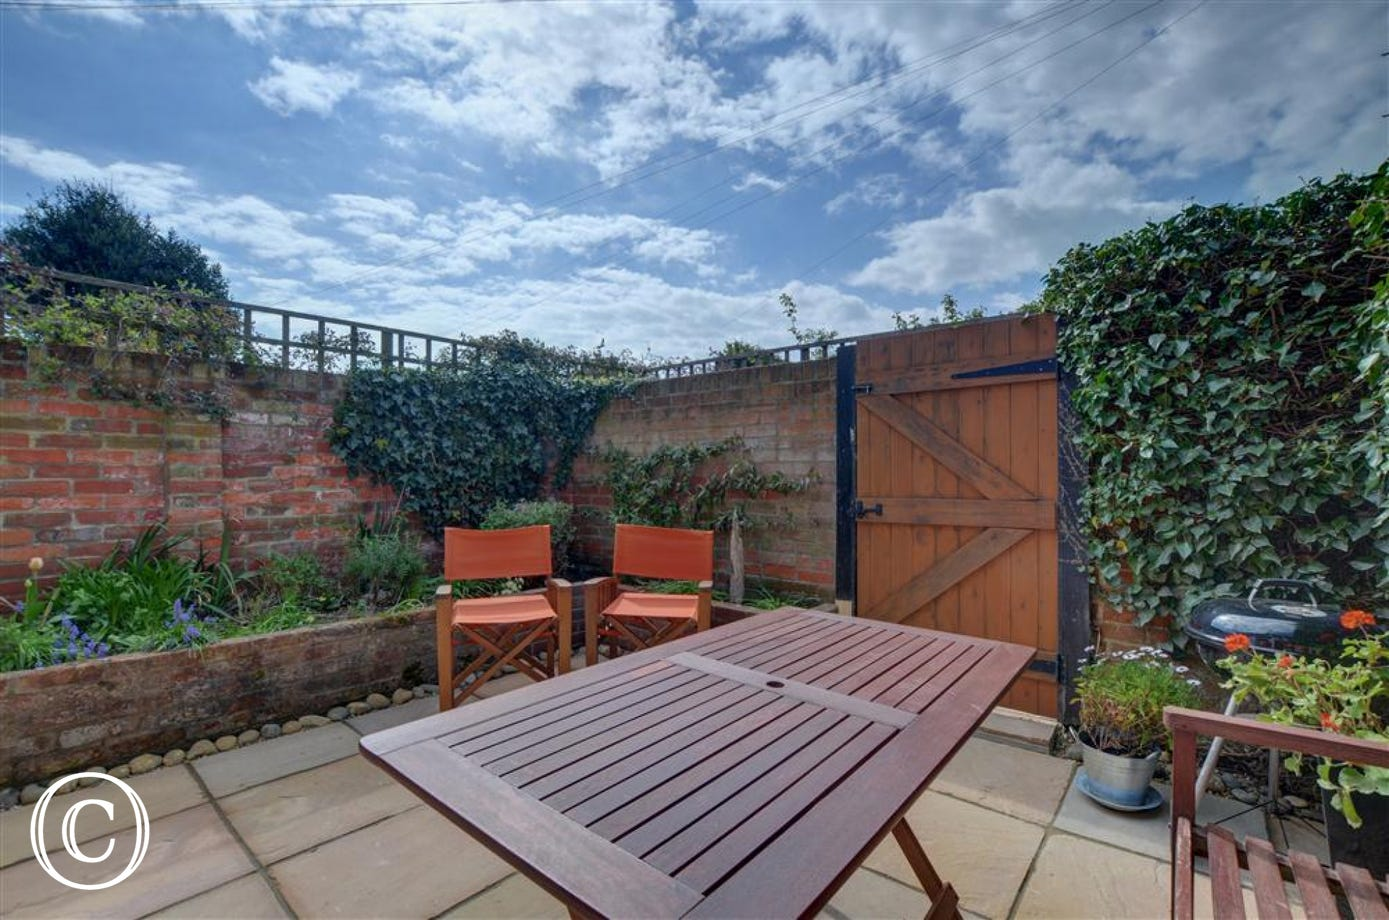 Enjoy this pretty outside space with seating a table and a BBQ so you can enjoy the Southwold sunshine.